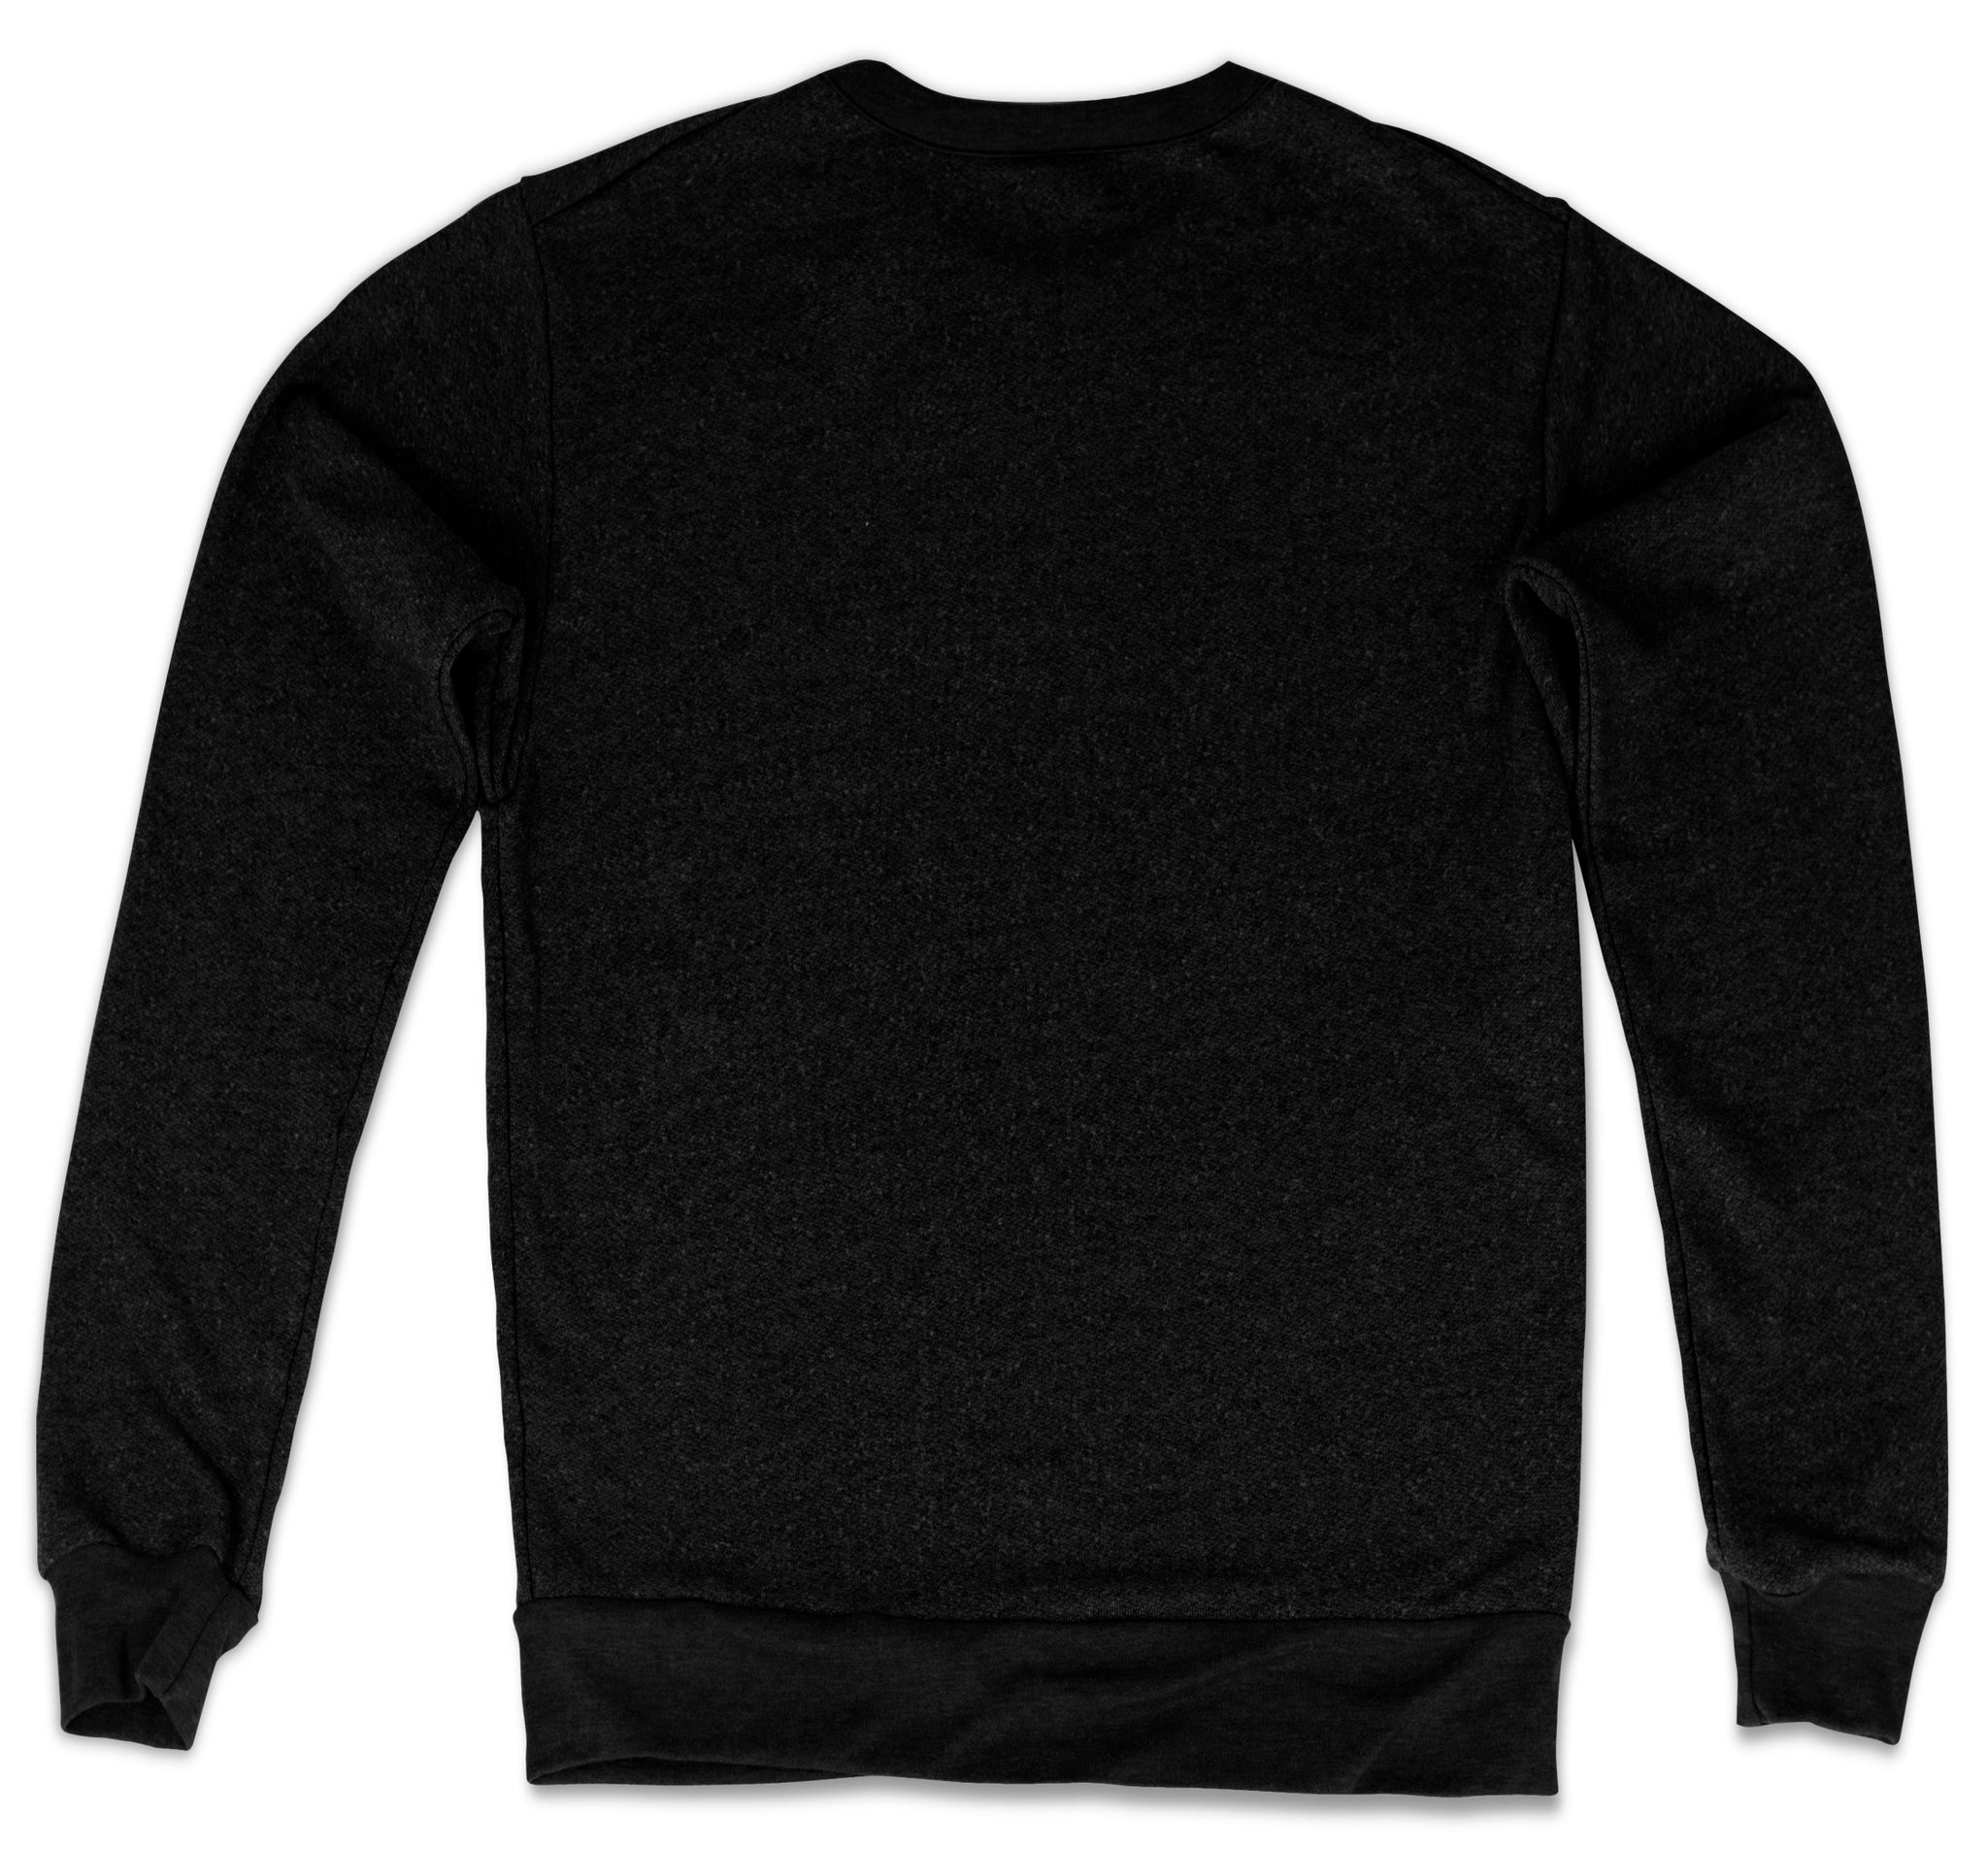 AWARD TOUR CREWNECK (BLACK)